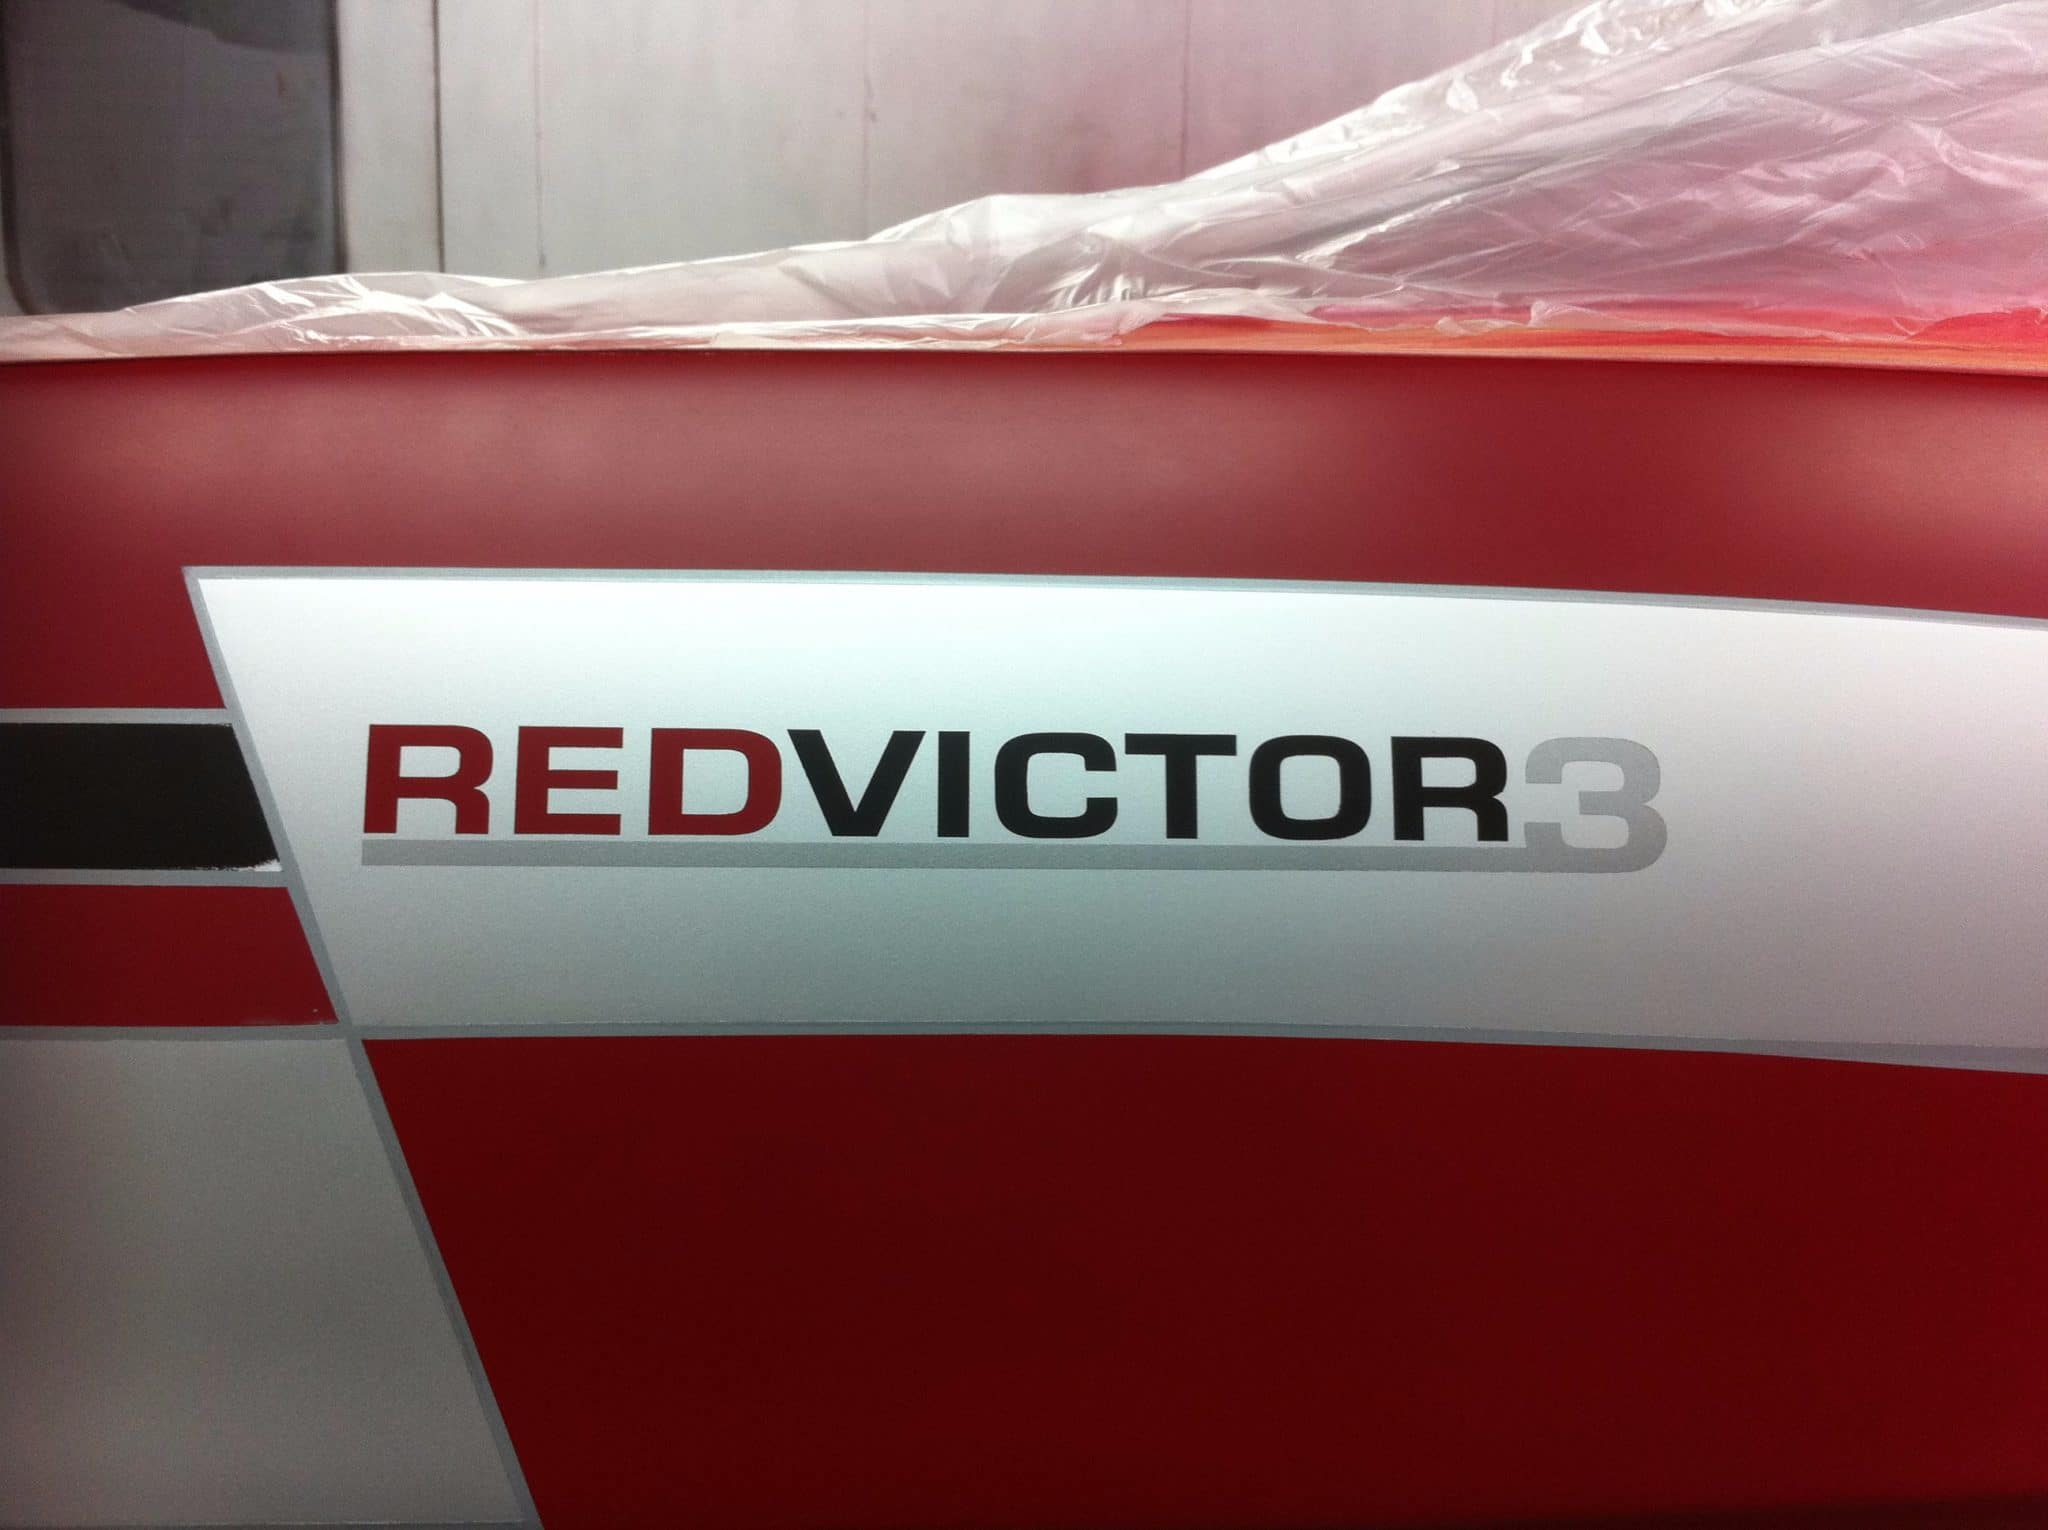 red victor 3 close up of of sign